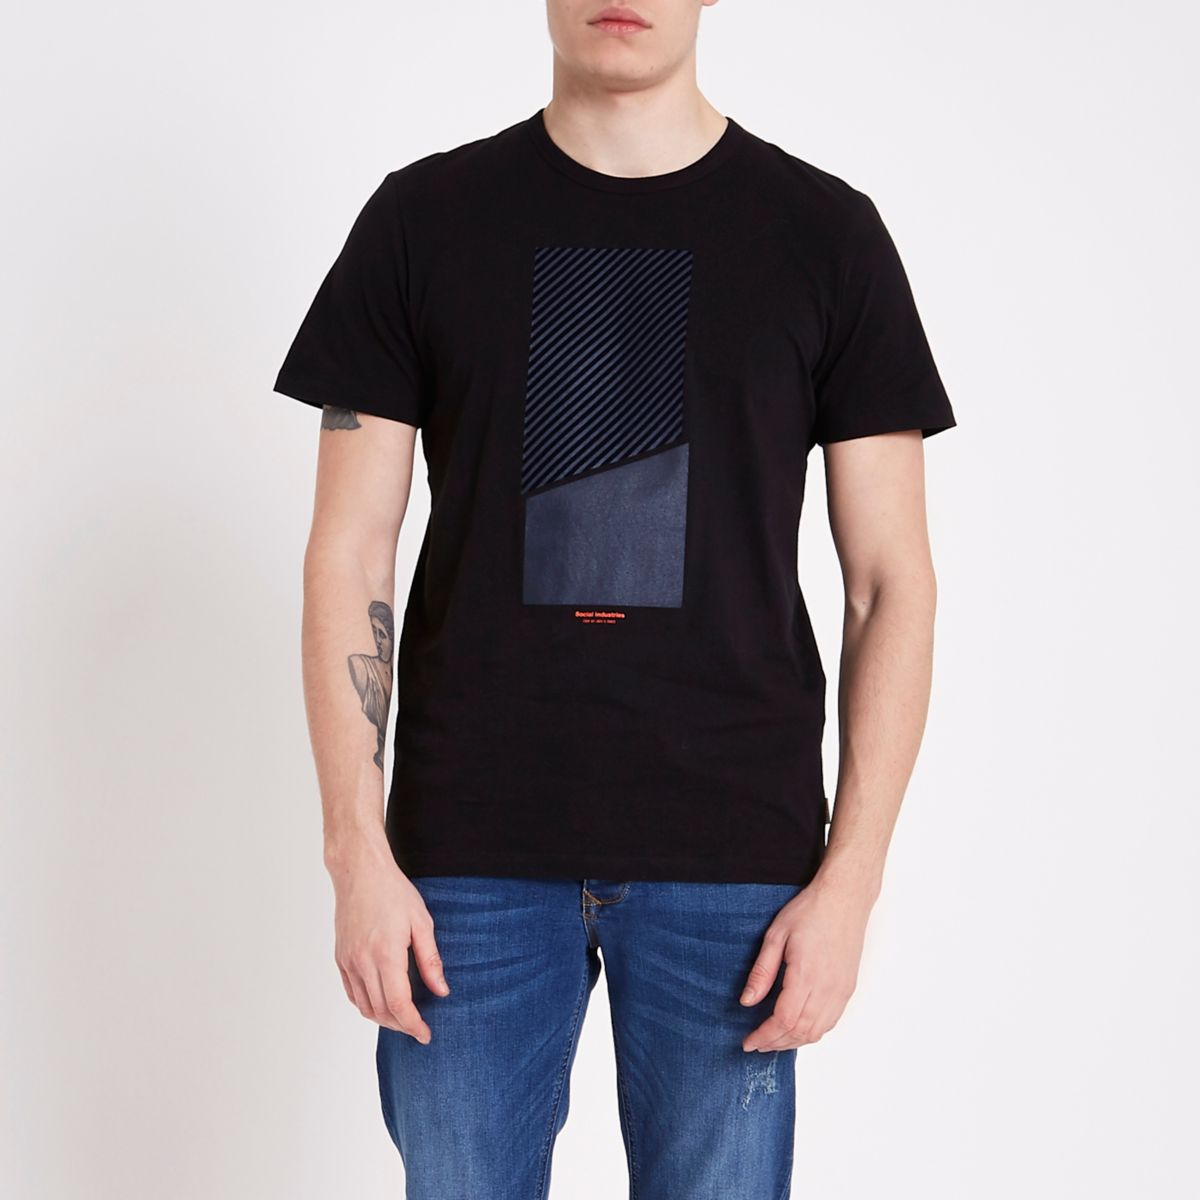 Cheap Price From China Buy Cheap Latest Collections River Island Mens Jack and Jones Navy stripe logo T-shirt Jack & Jones Sale In China ZziGIv8Zwk